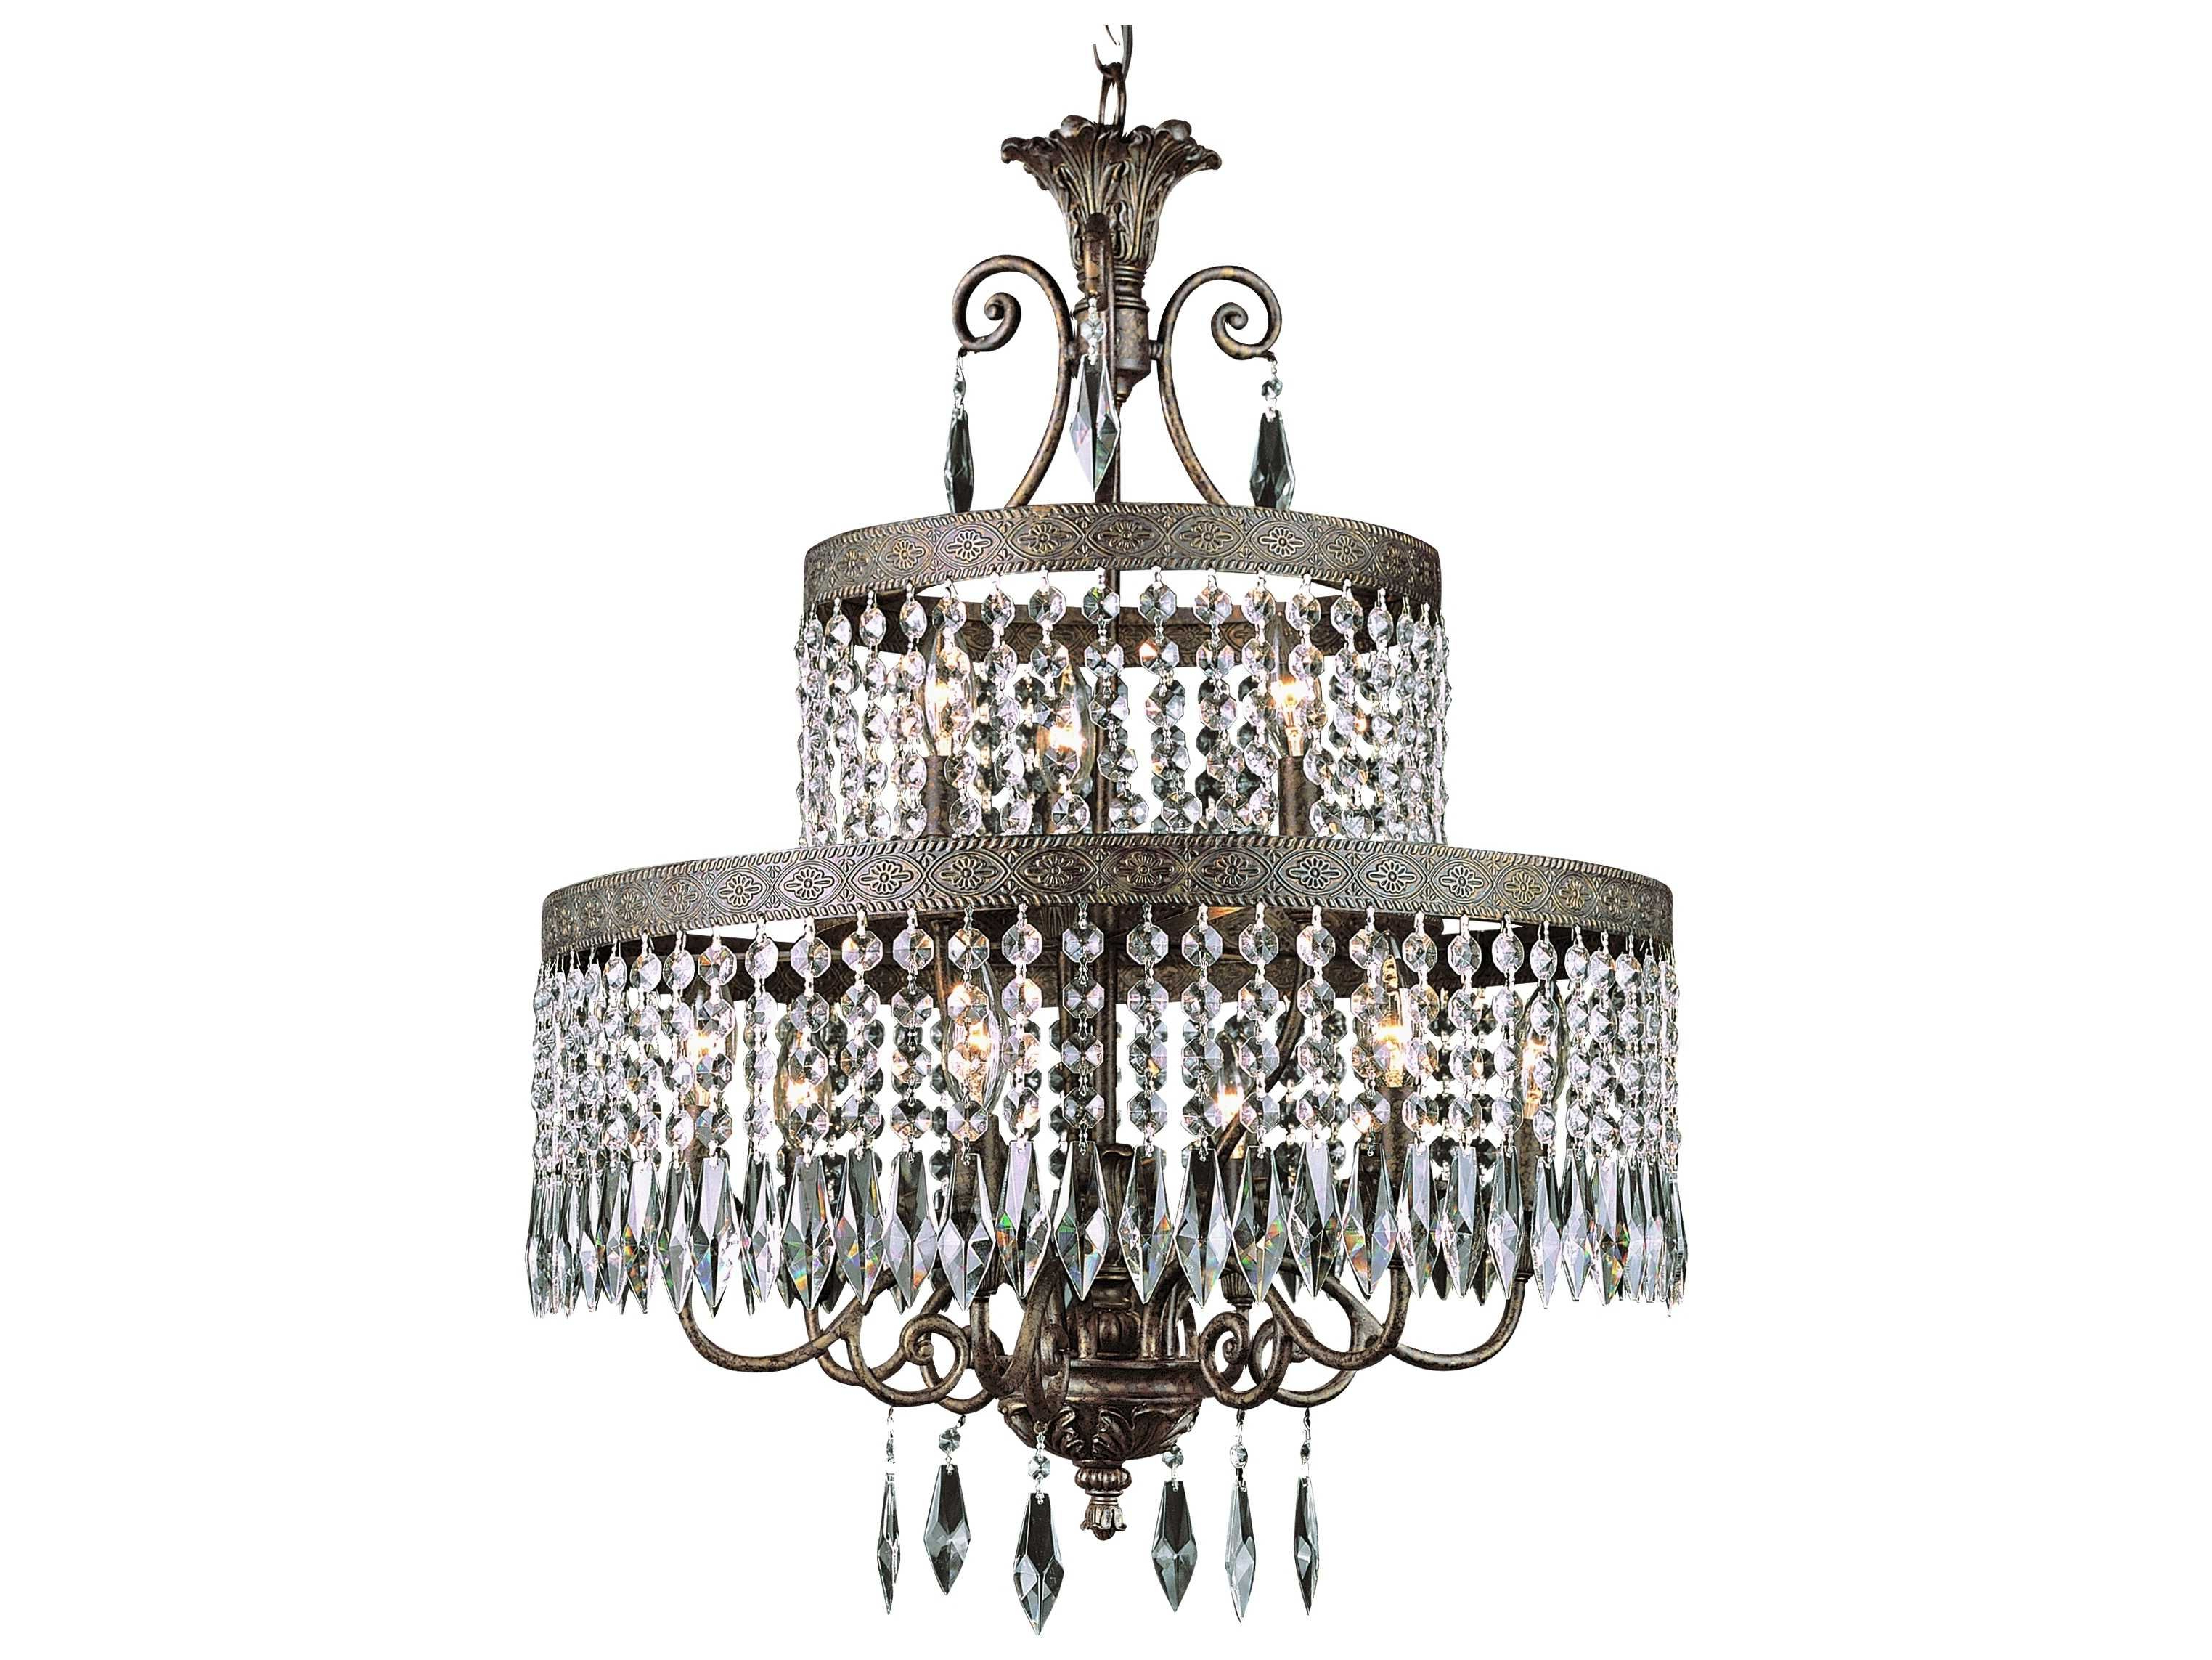 Benedetto 5 Light Crystal Chandeliers Regarding Popular Better Price Avail Trans Globe Lighting Eclectic Boutique (View 19 of 25)